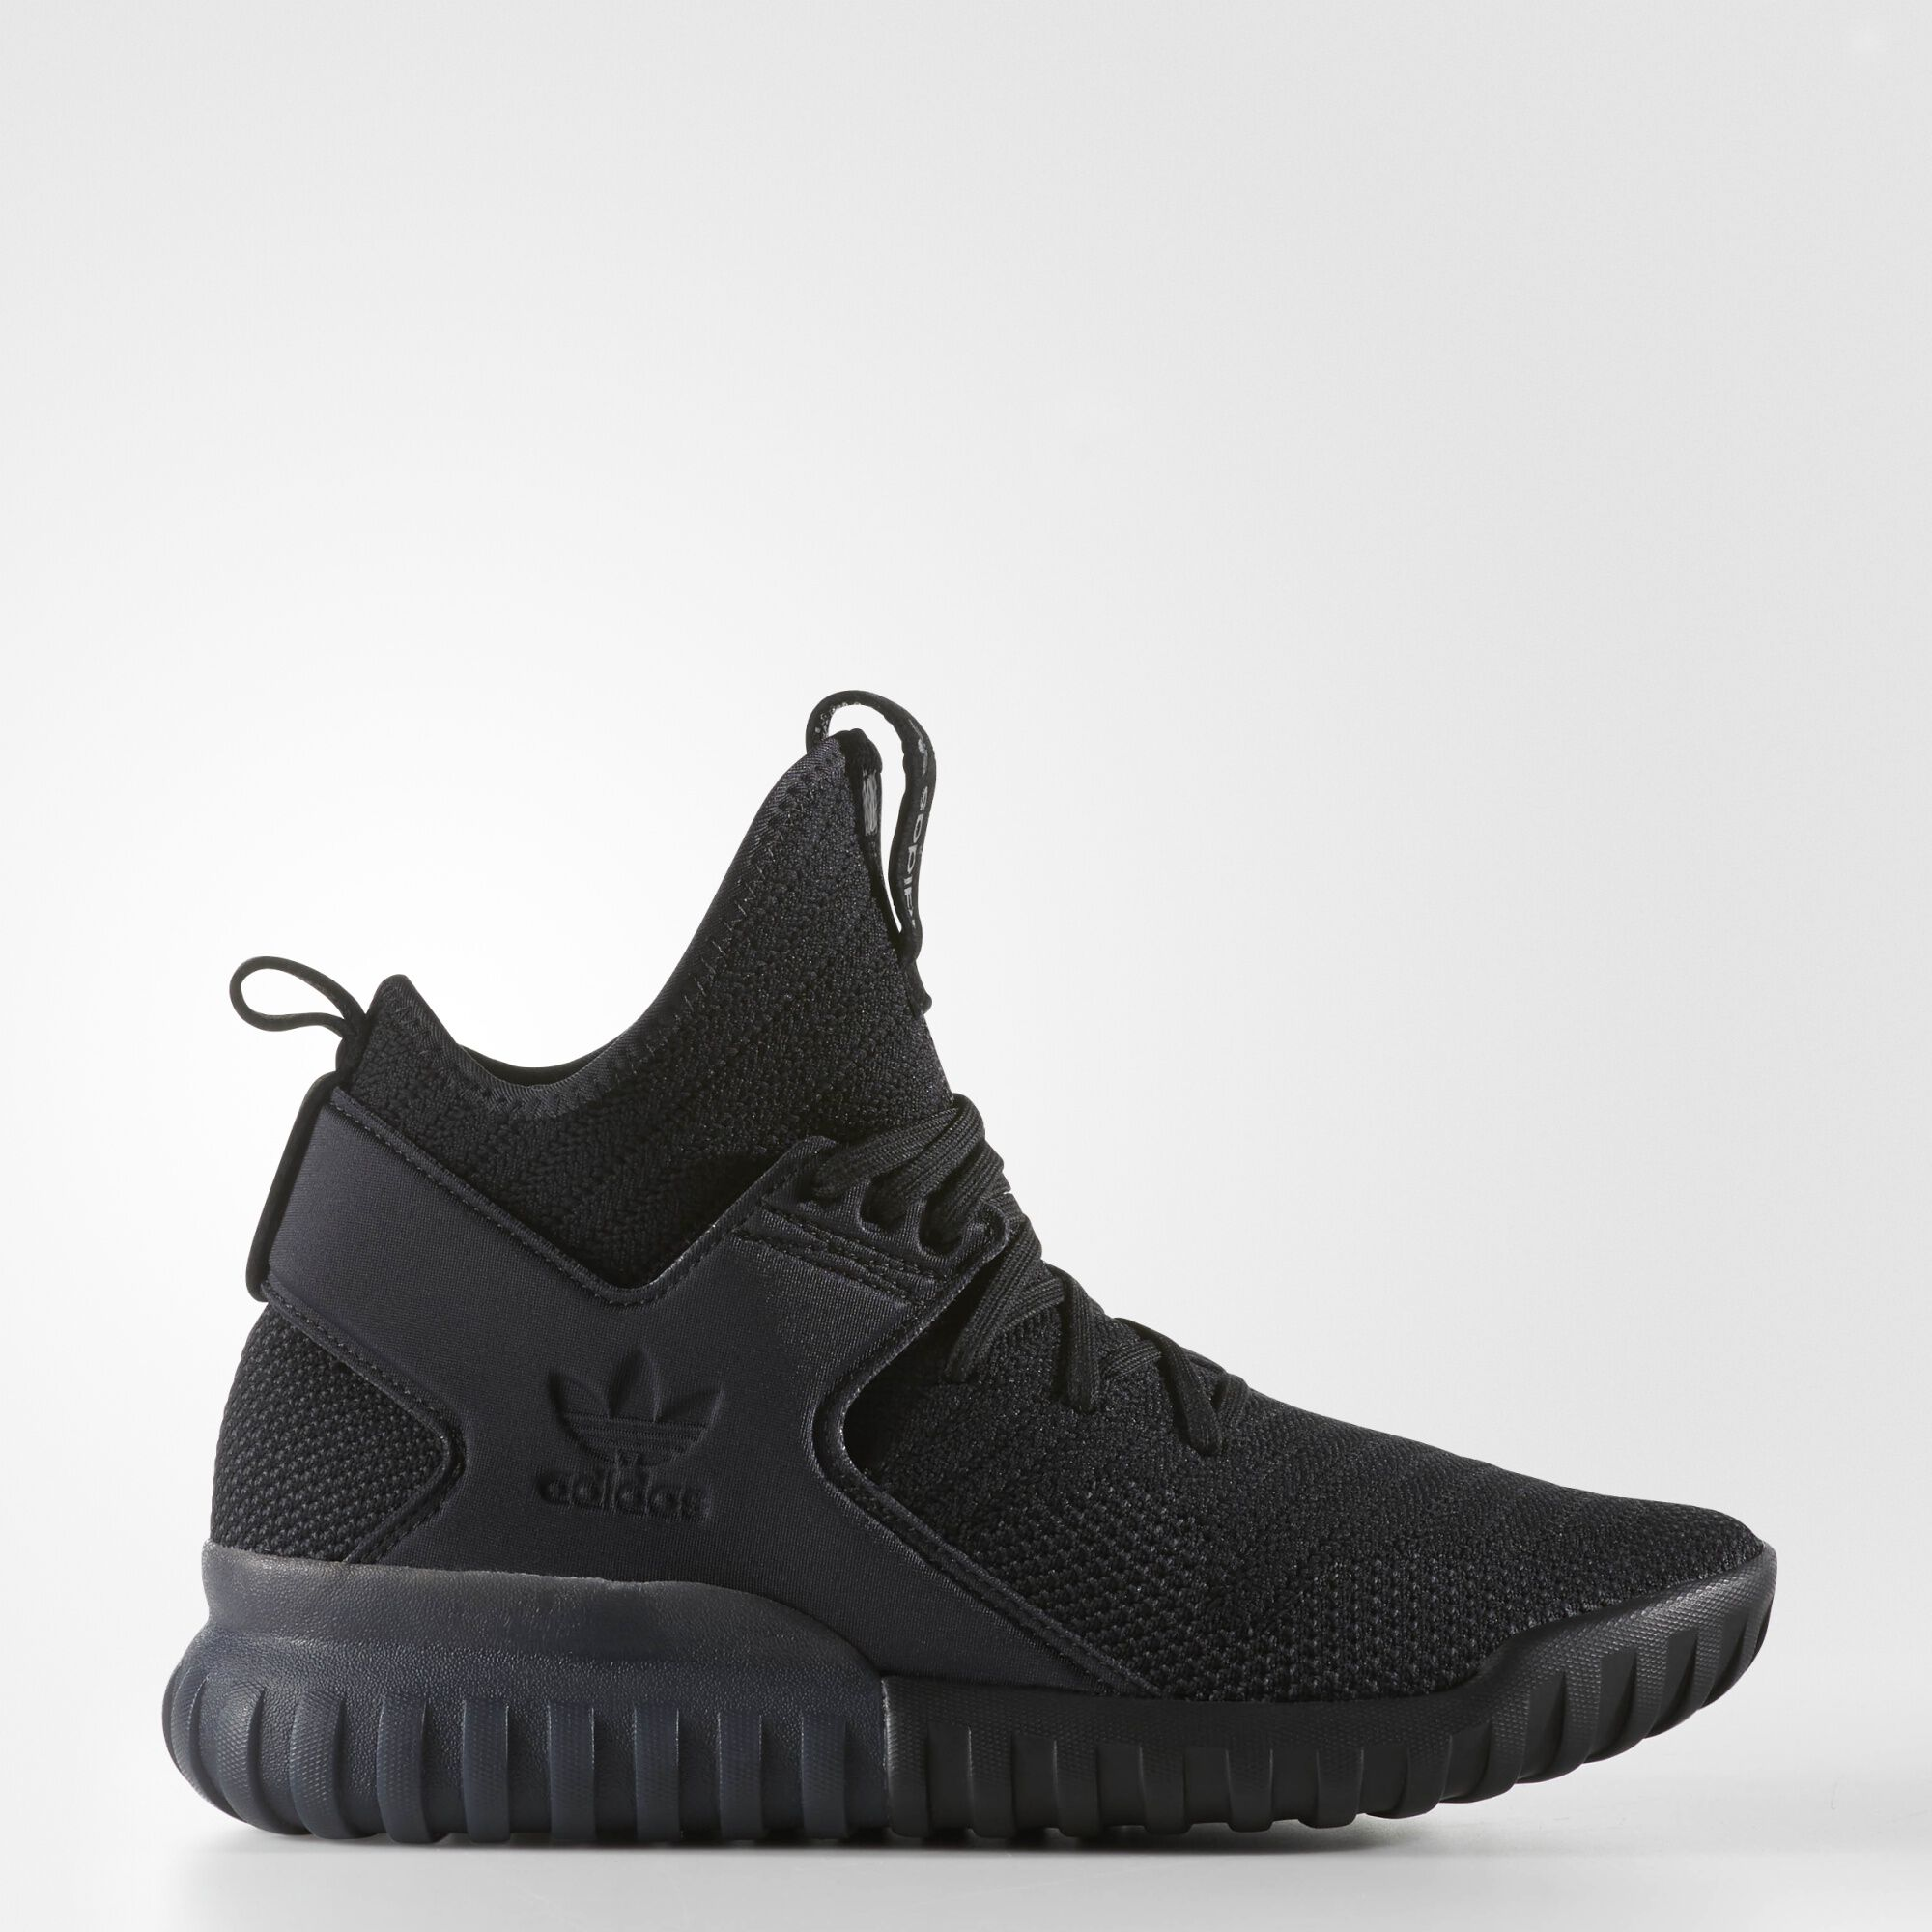 Adidas Tubular All Black Mens